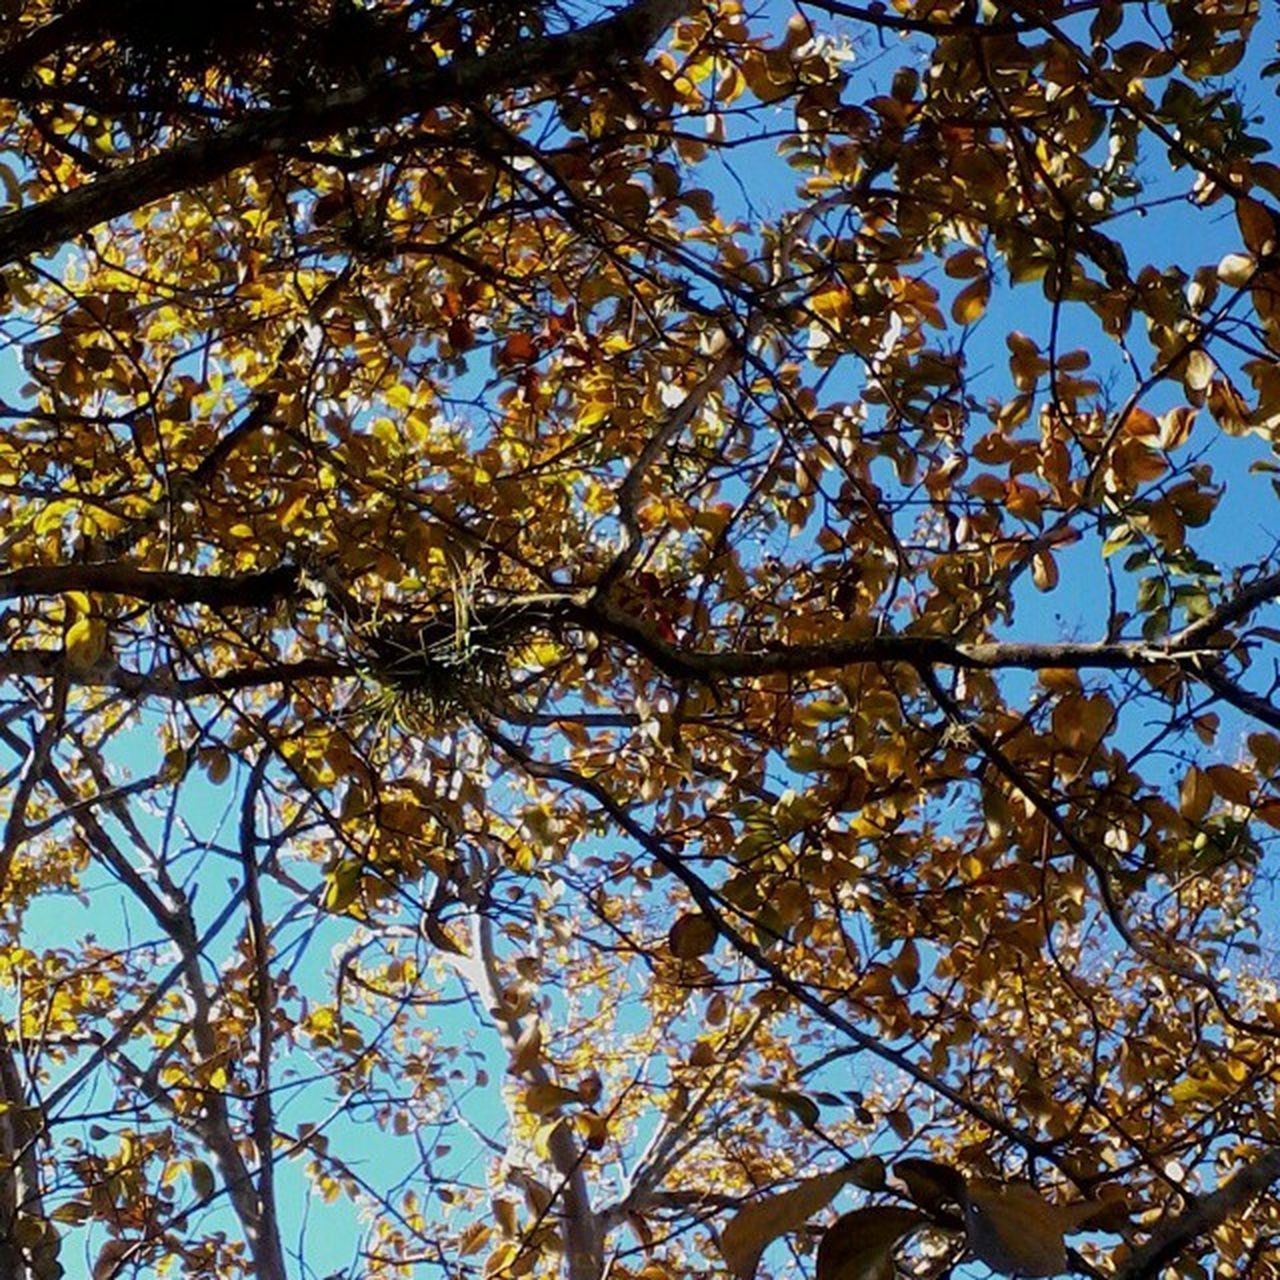 tree, low angle view, branch, growth, nature, beauty in nature, leaf, autumn, sky, change, tranquility, sunlight, yellow, day, outdoors, season, no people, tree trunk, clear sky, flower